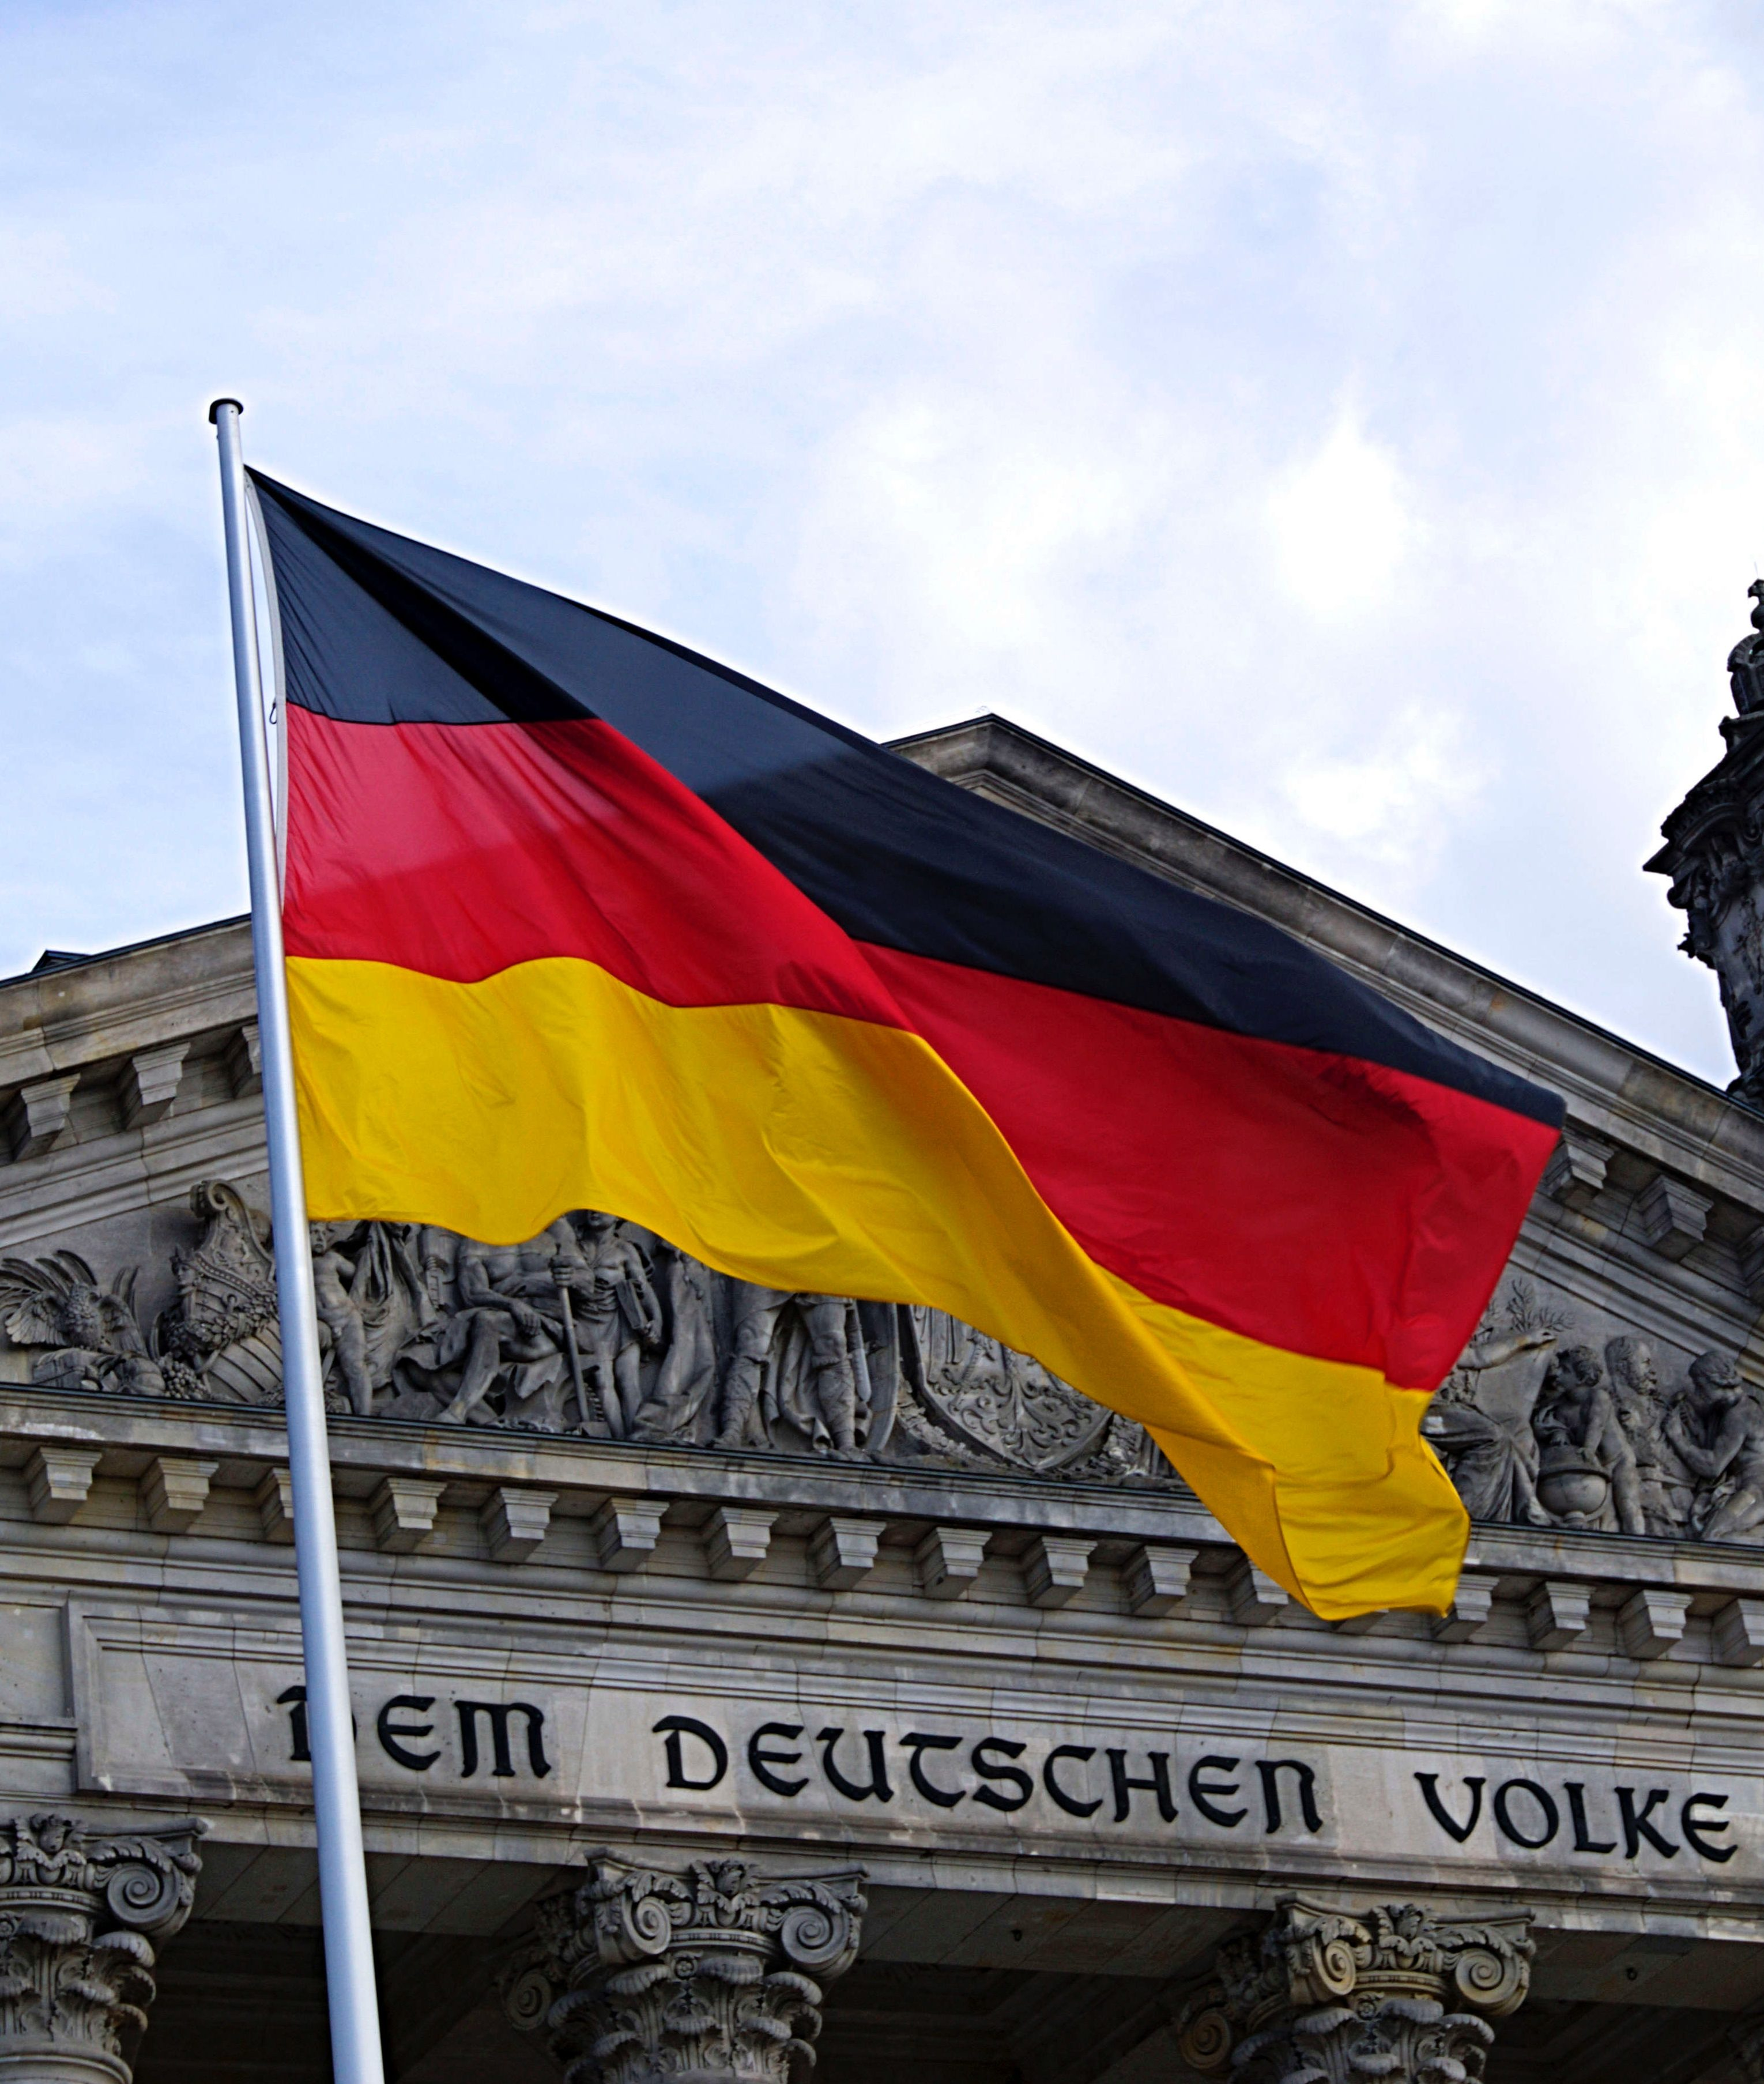 German flag in front of building